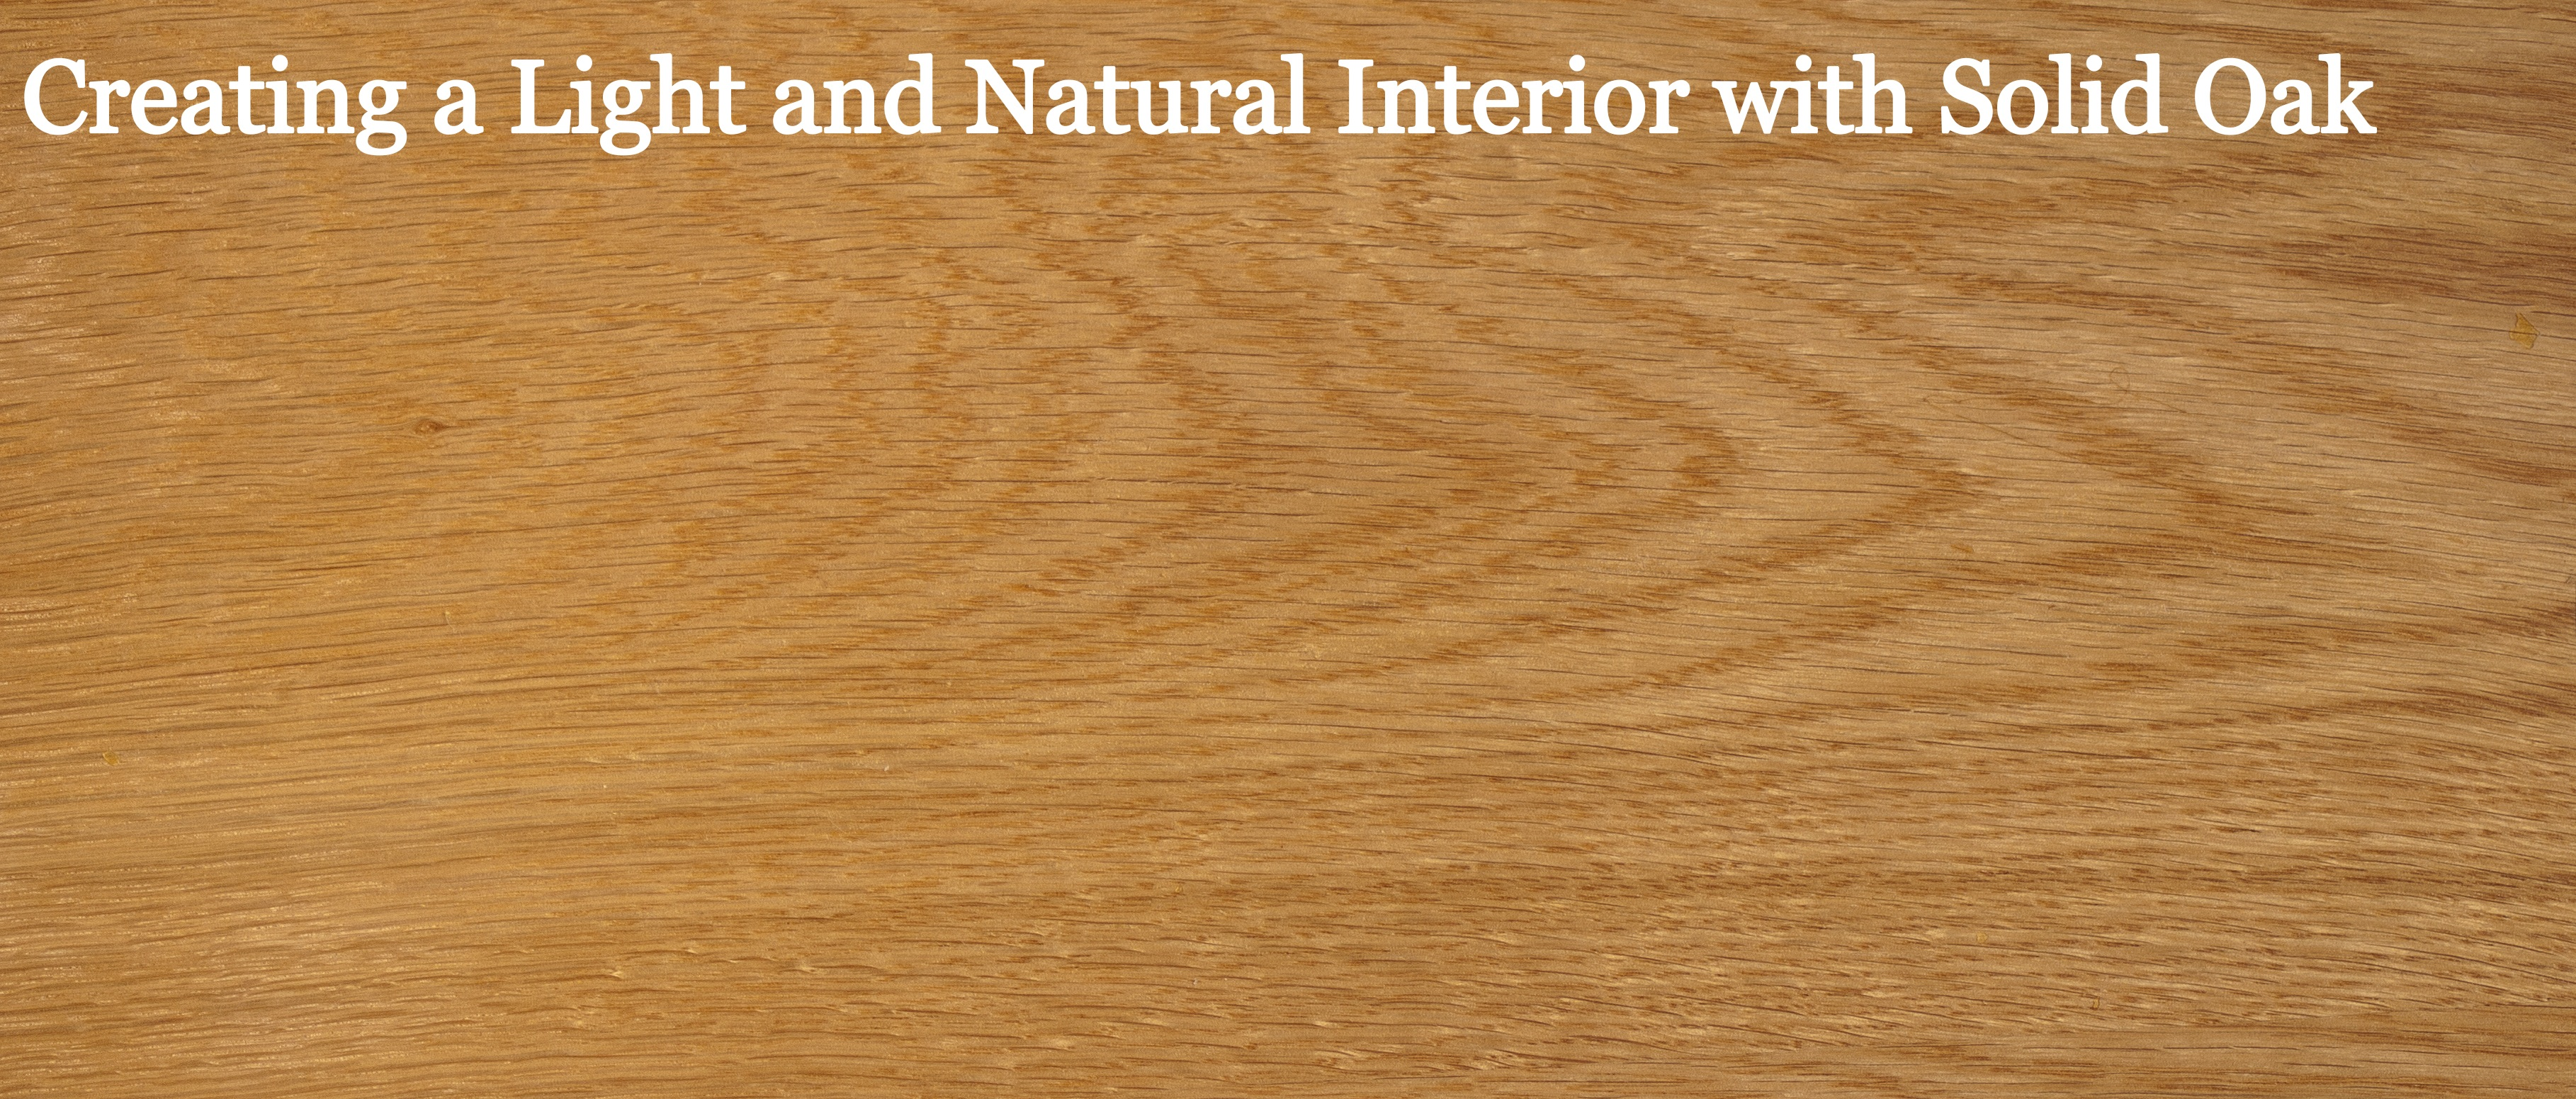 Creating a Light and Natural Interior with Solid Oak | 4Living Blog